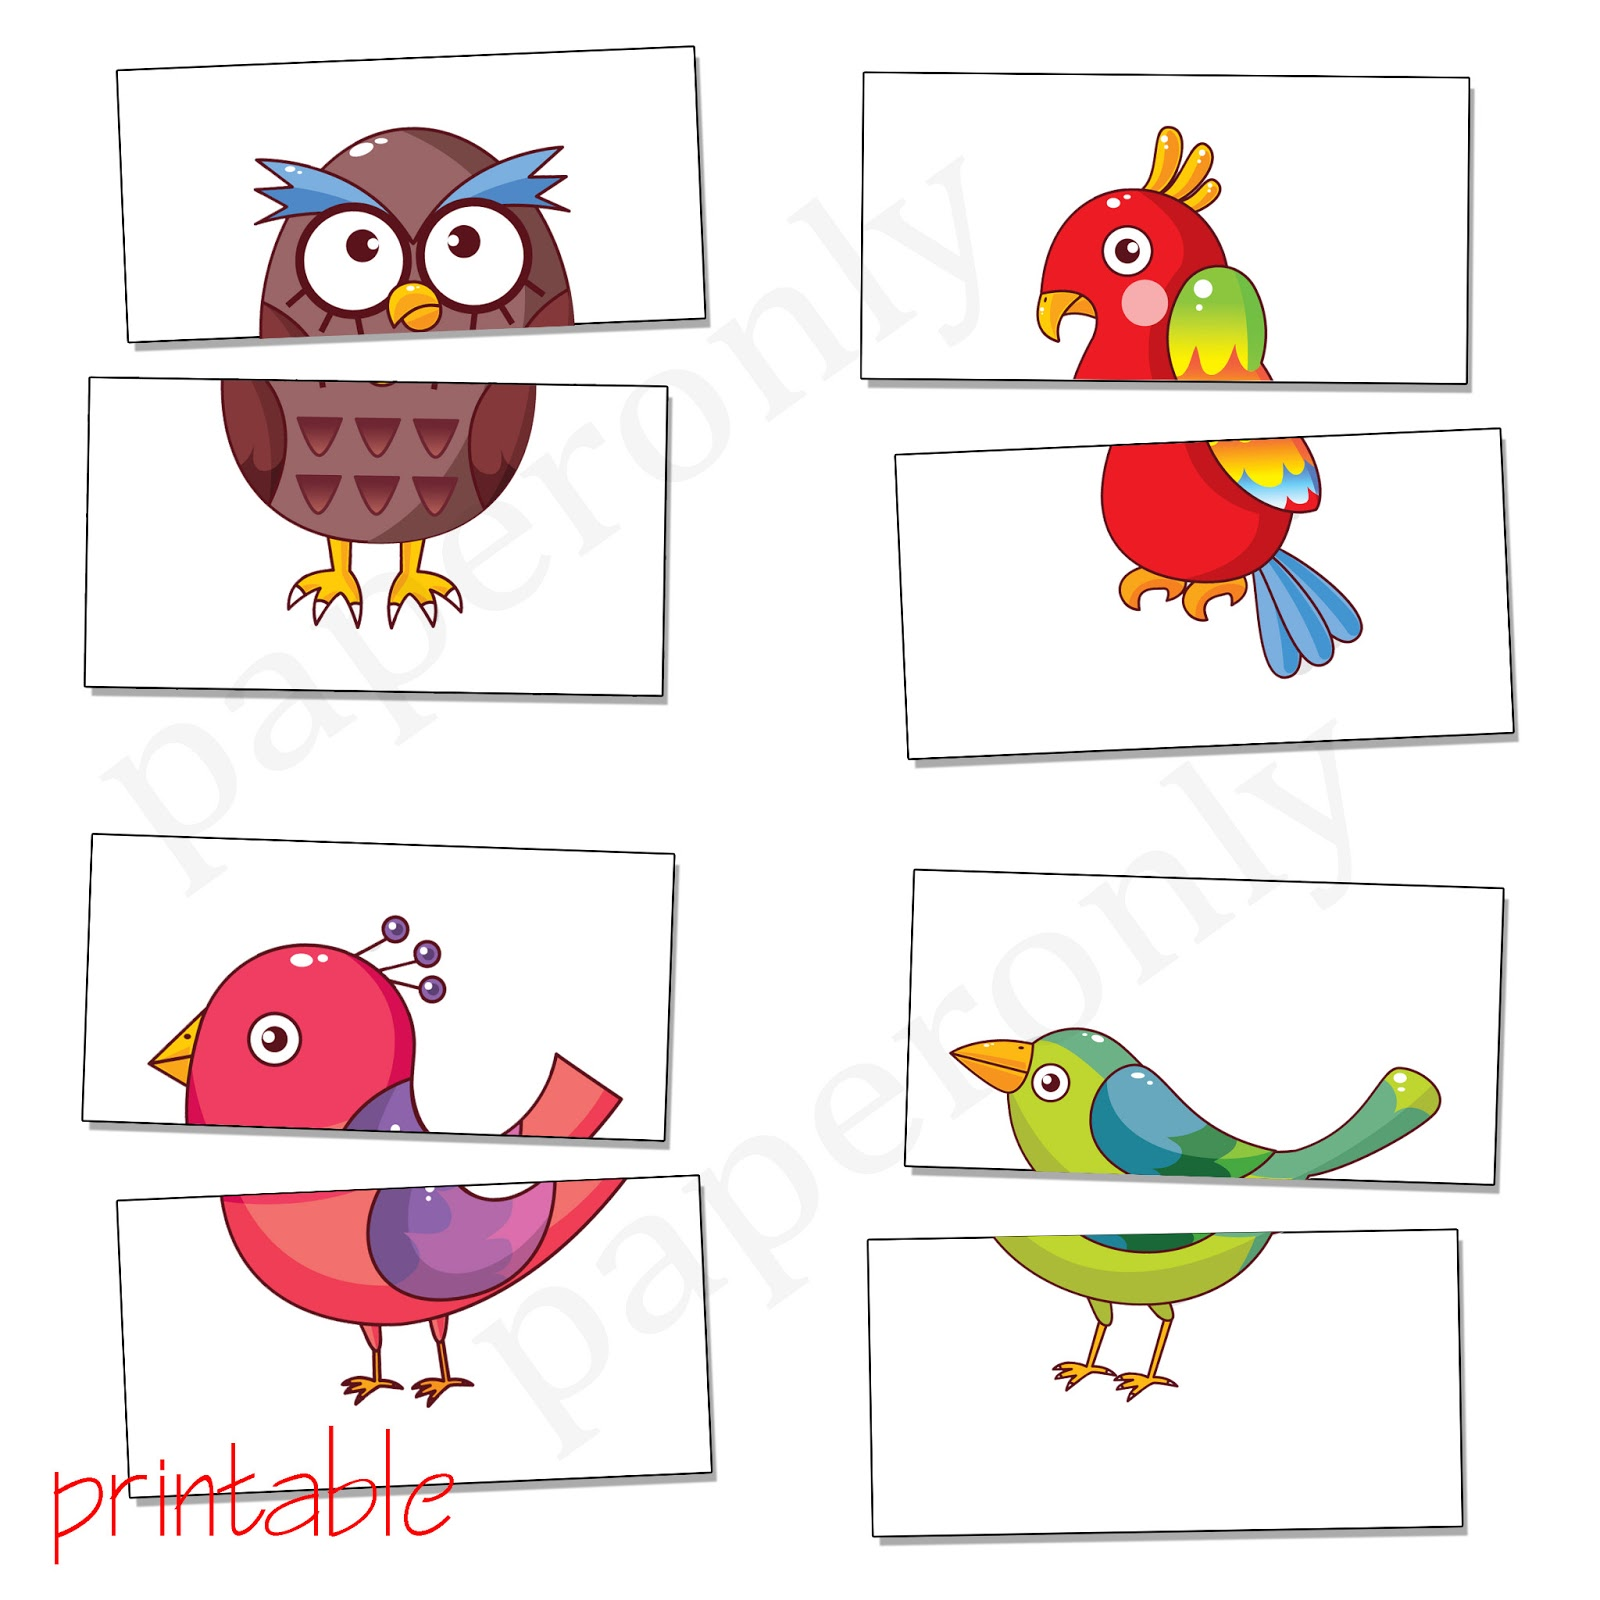 printables: complete the birds - flash card - printable PDF